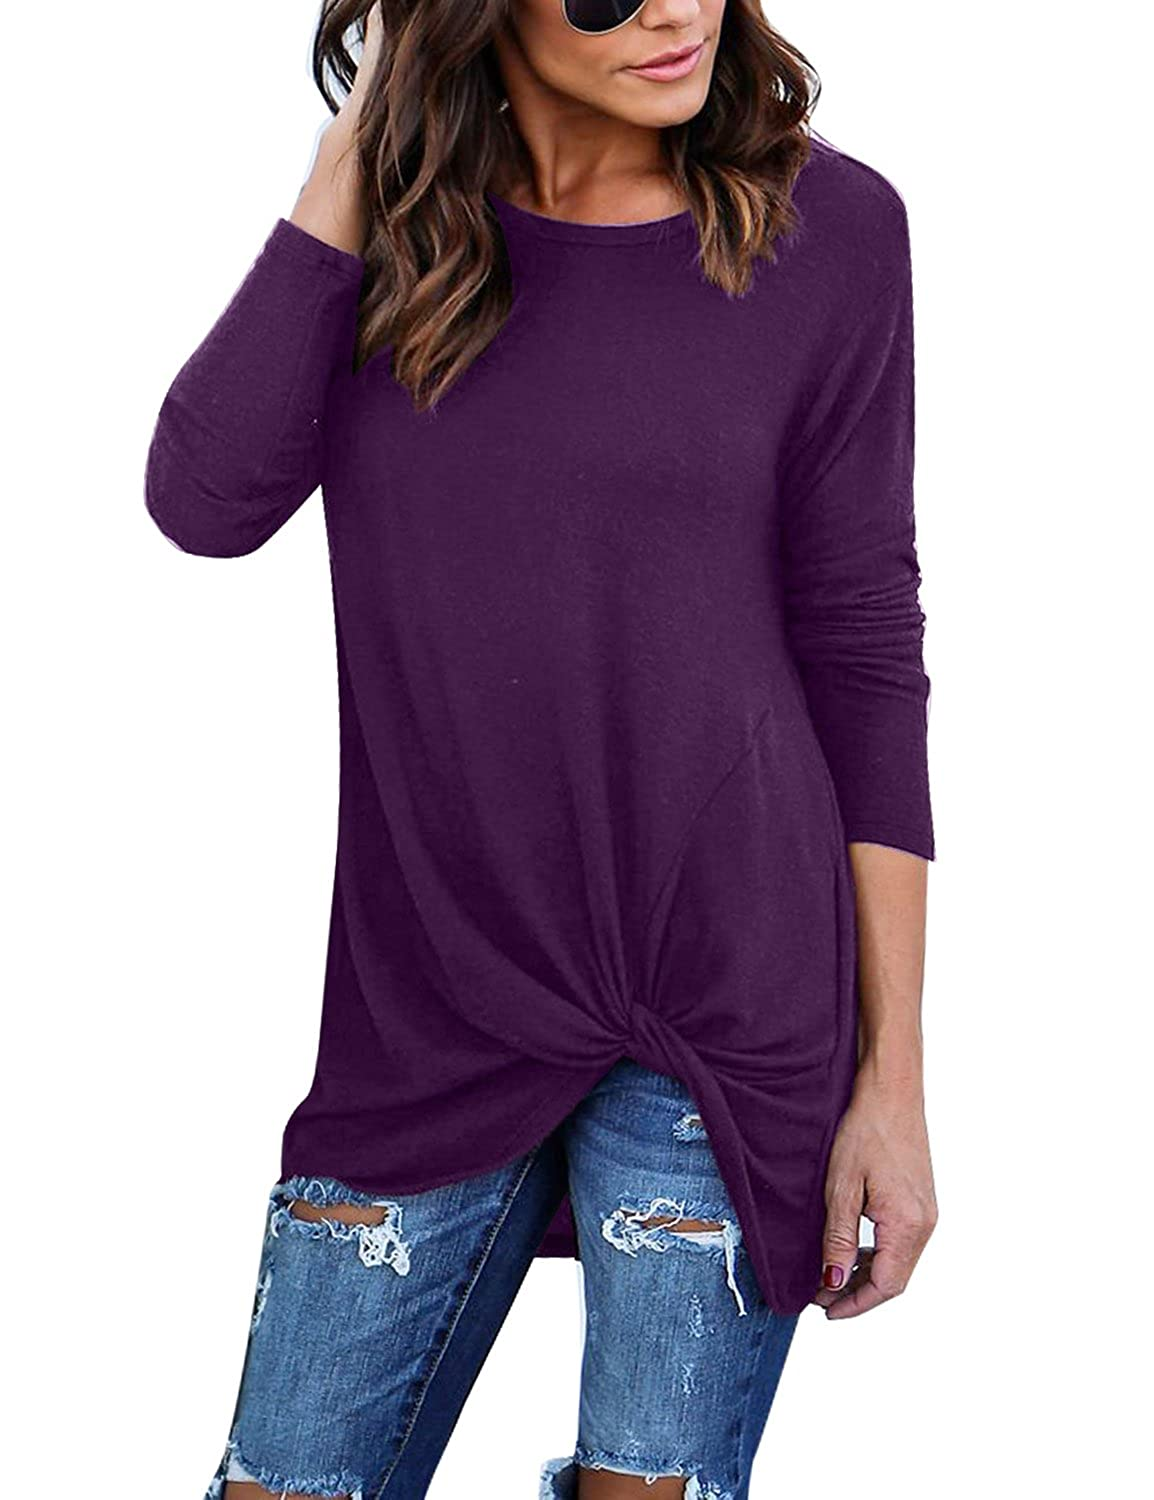 blossil Women's Casual Long Sleeves Twist Knot Front Comfy Pullover Top Shirts BS-HA3288